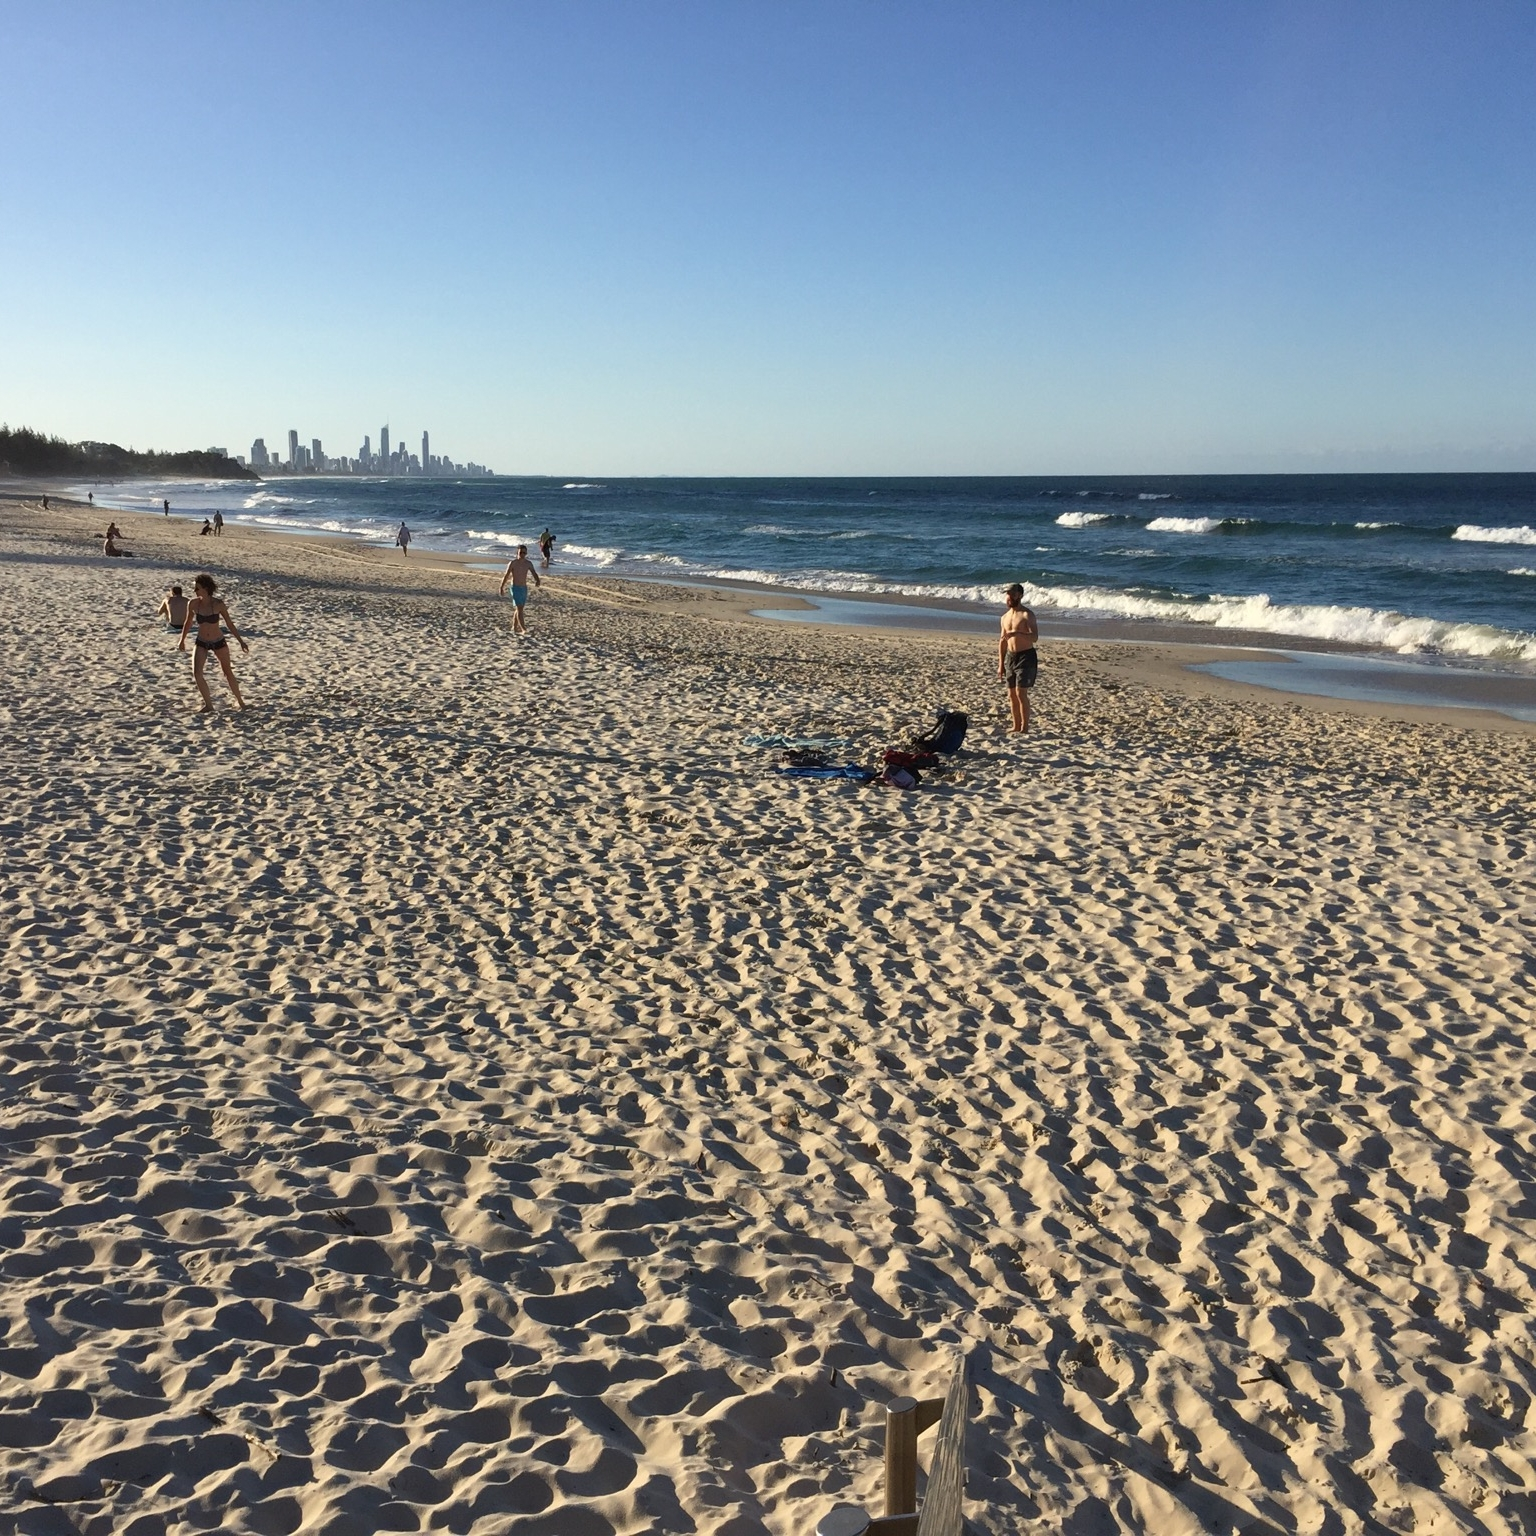 Beach at Burleigh Heads, Surfer's Paradise by Miles Dean for The Doubtful Traveller